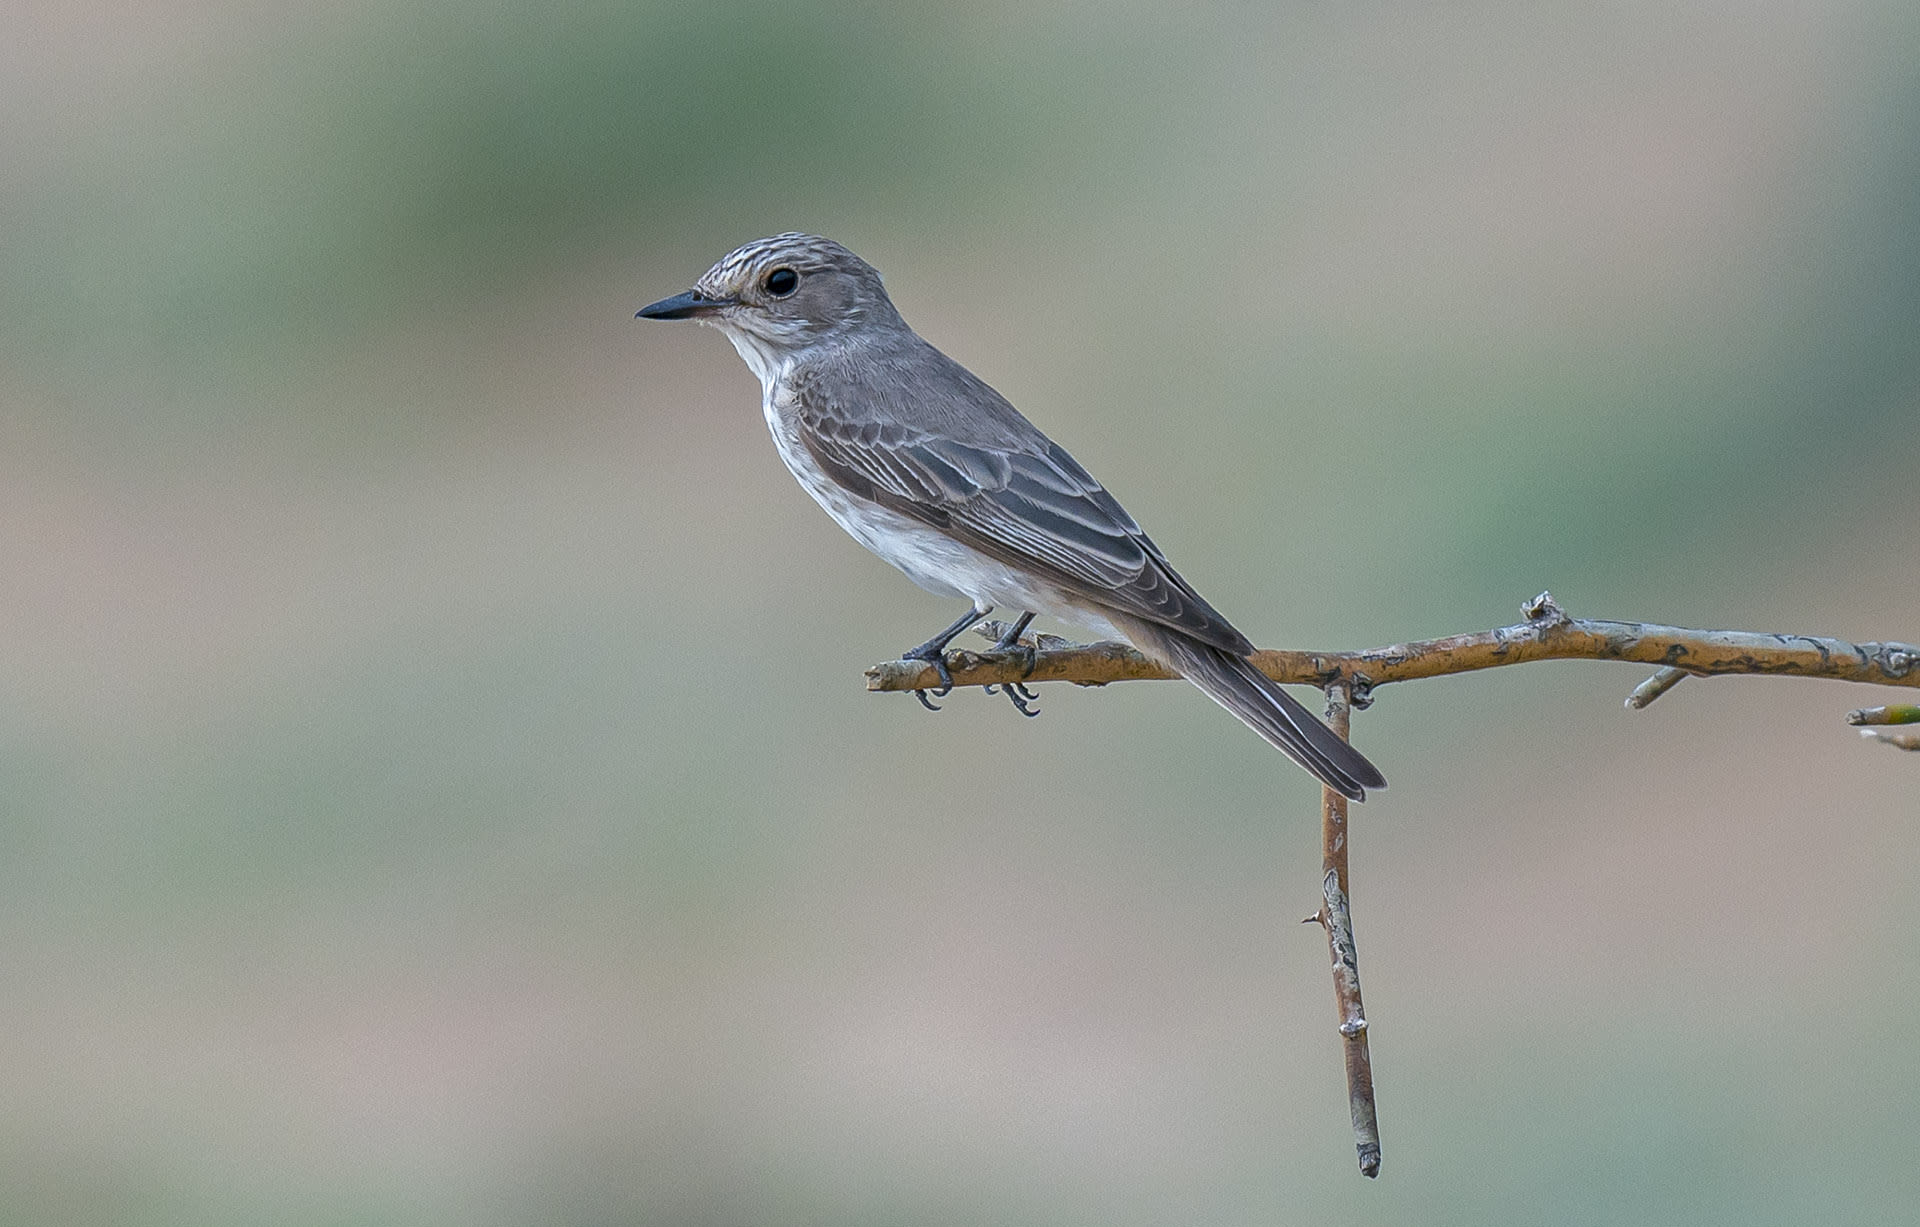 : Spotted flycatcher is often sighted perched on exposed branches over open areas, such as the arid landscape of Desert National Park. Photo: Dhritiman Mukherjee  Cover: Until five years ago, few people knew Musa Khan. Today, he is one of the most in-demand birding guides in Desert National Park. Cover photo courtesy: Musa Khan